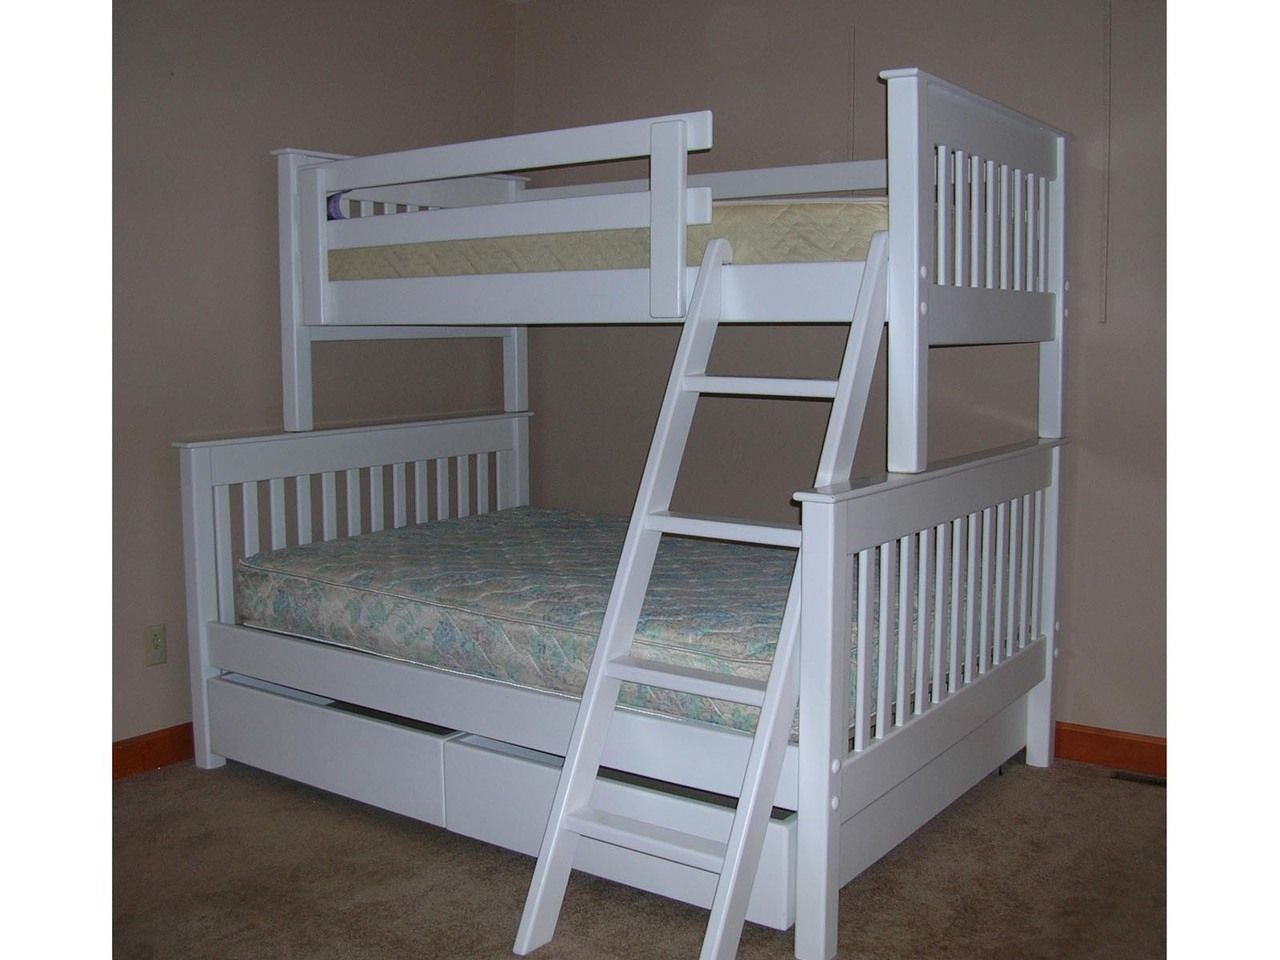 Twin/Full Bunk Bed B31 The Bunk & Loft Factory Cool